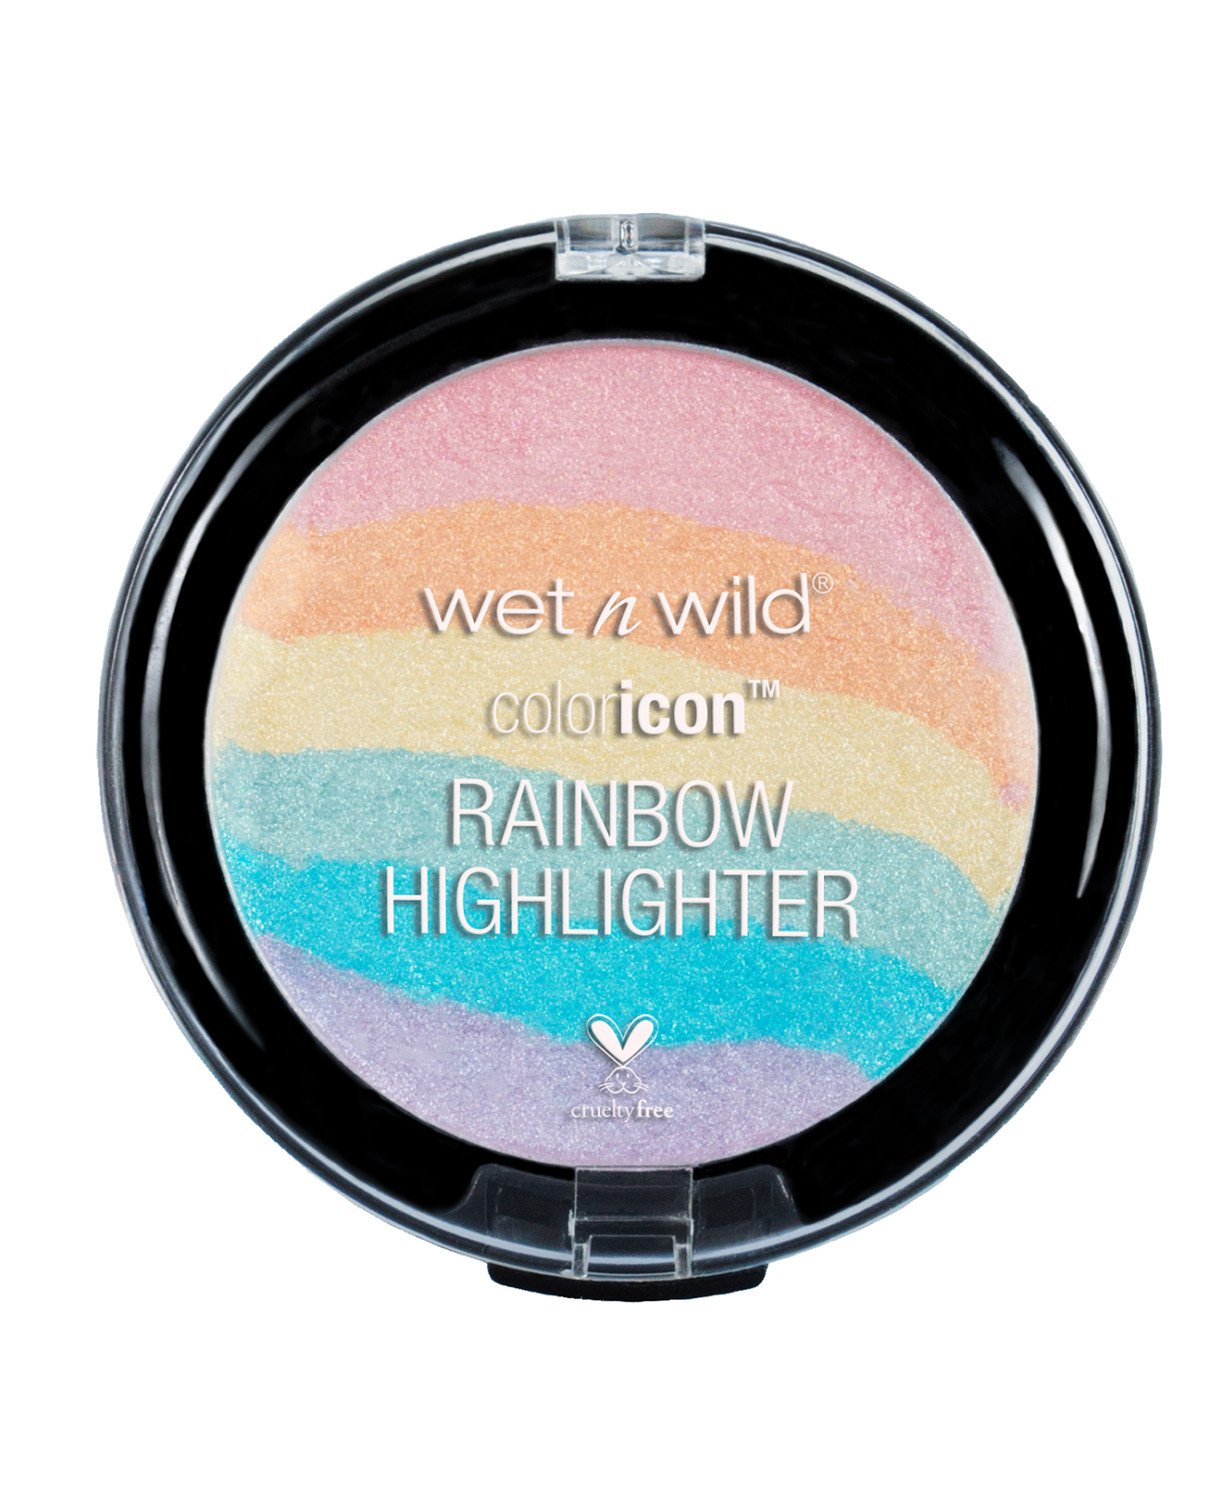 wet n wild Color Icon Rainbow Highlighter, Unicorn Glow, 0.26 Ounce Markwins Beauty Products 3100-34891